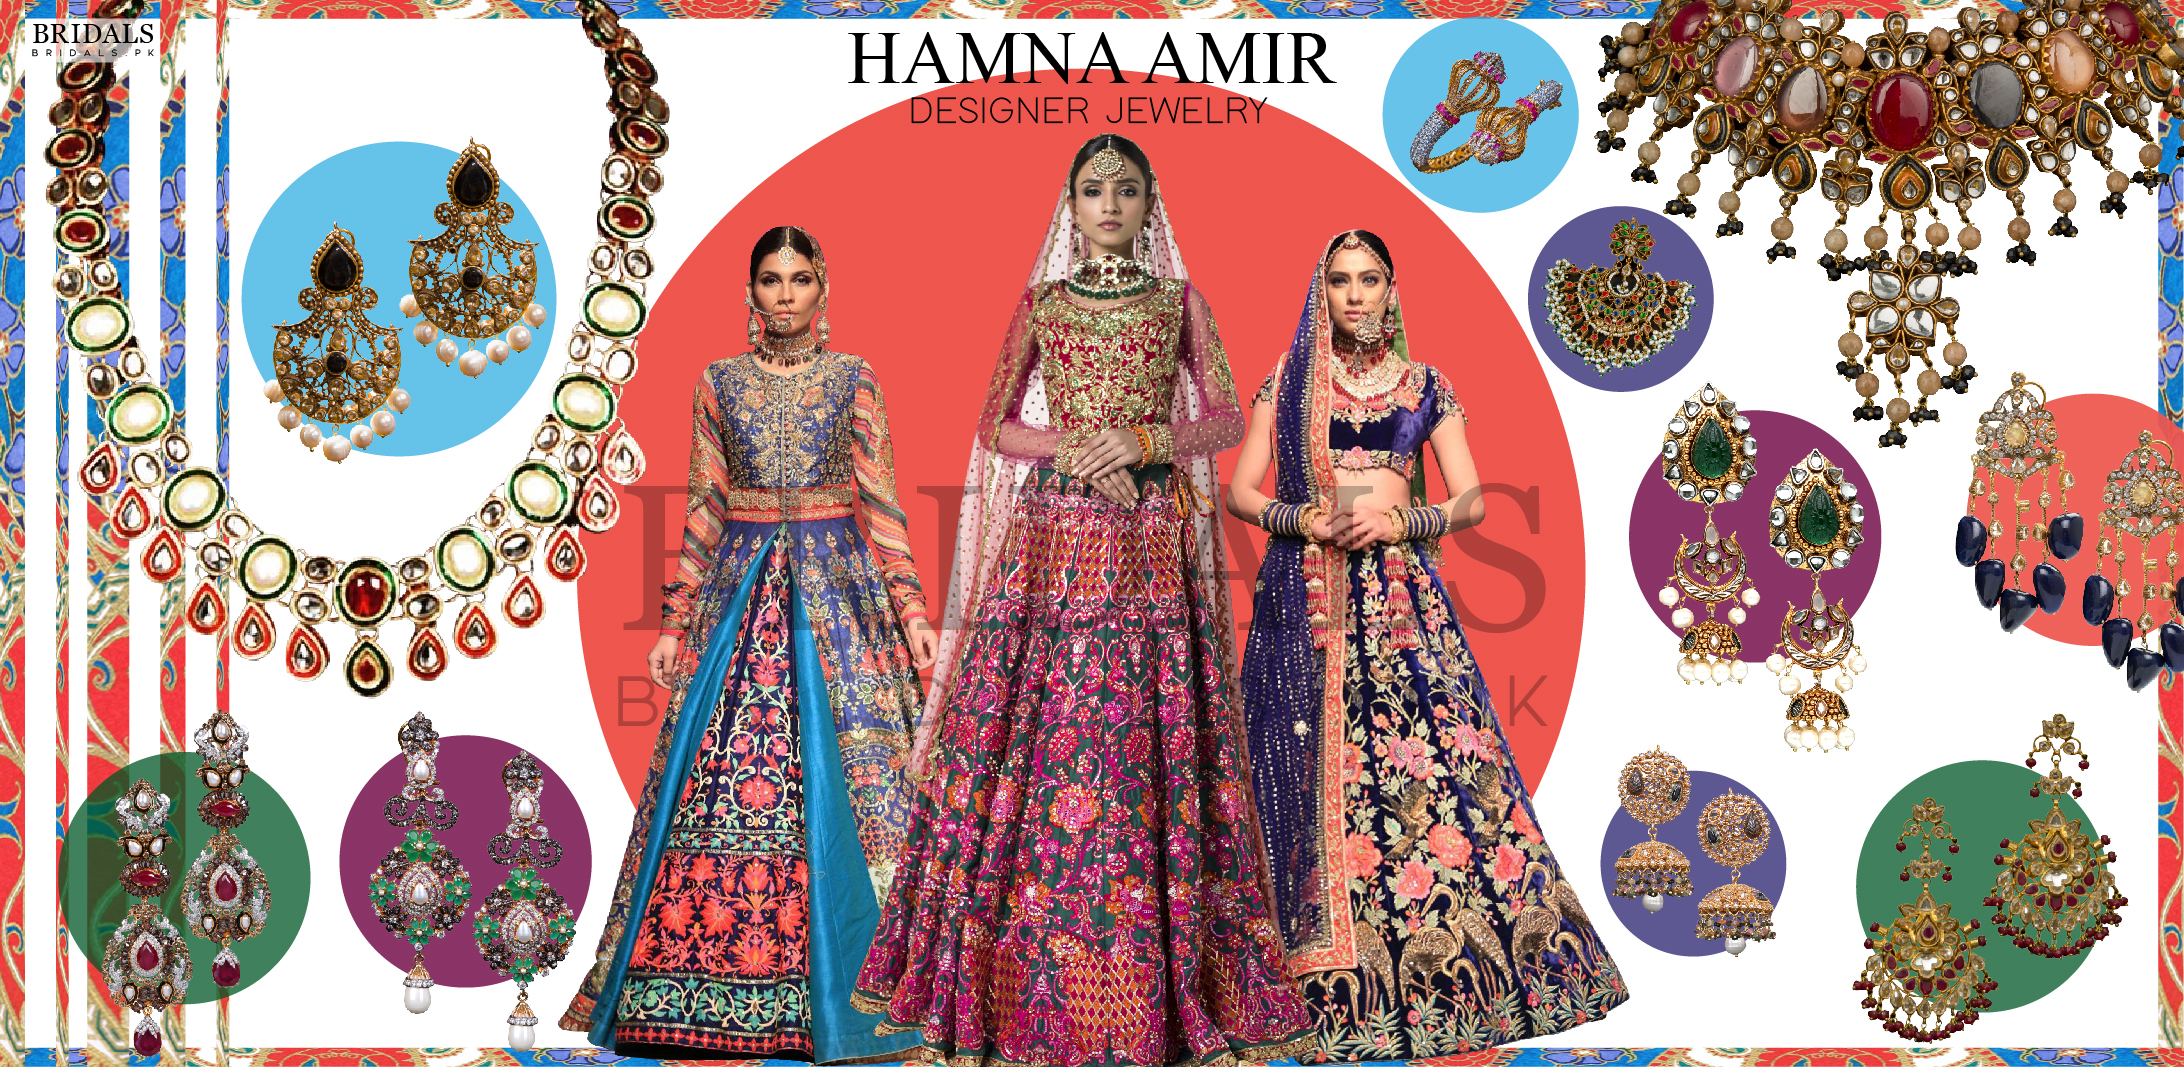 Hamna Amir; The Traditional Bridal Jewelry Maestro Enchants Us Again With Her Designs!